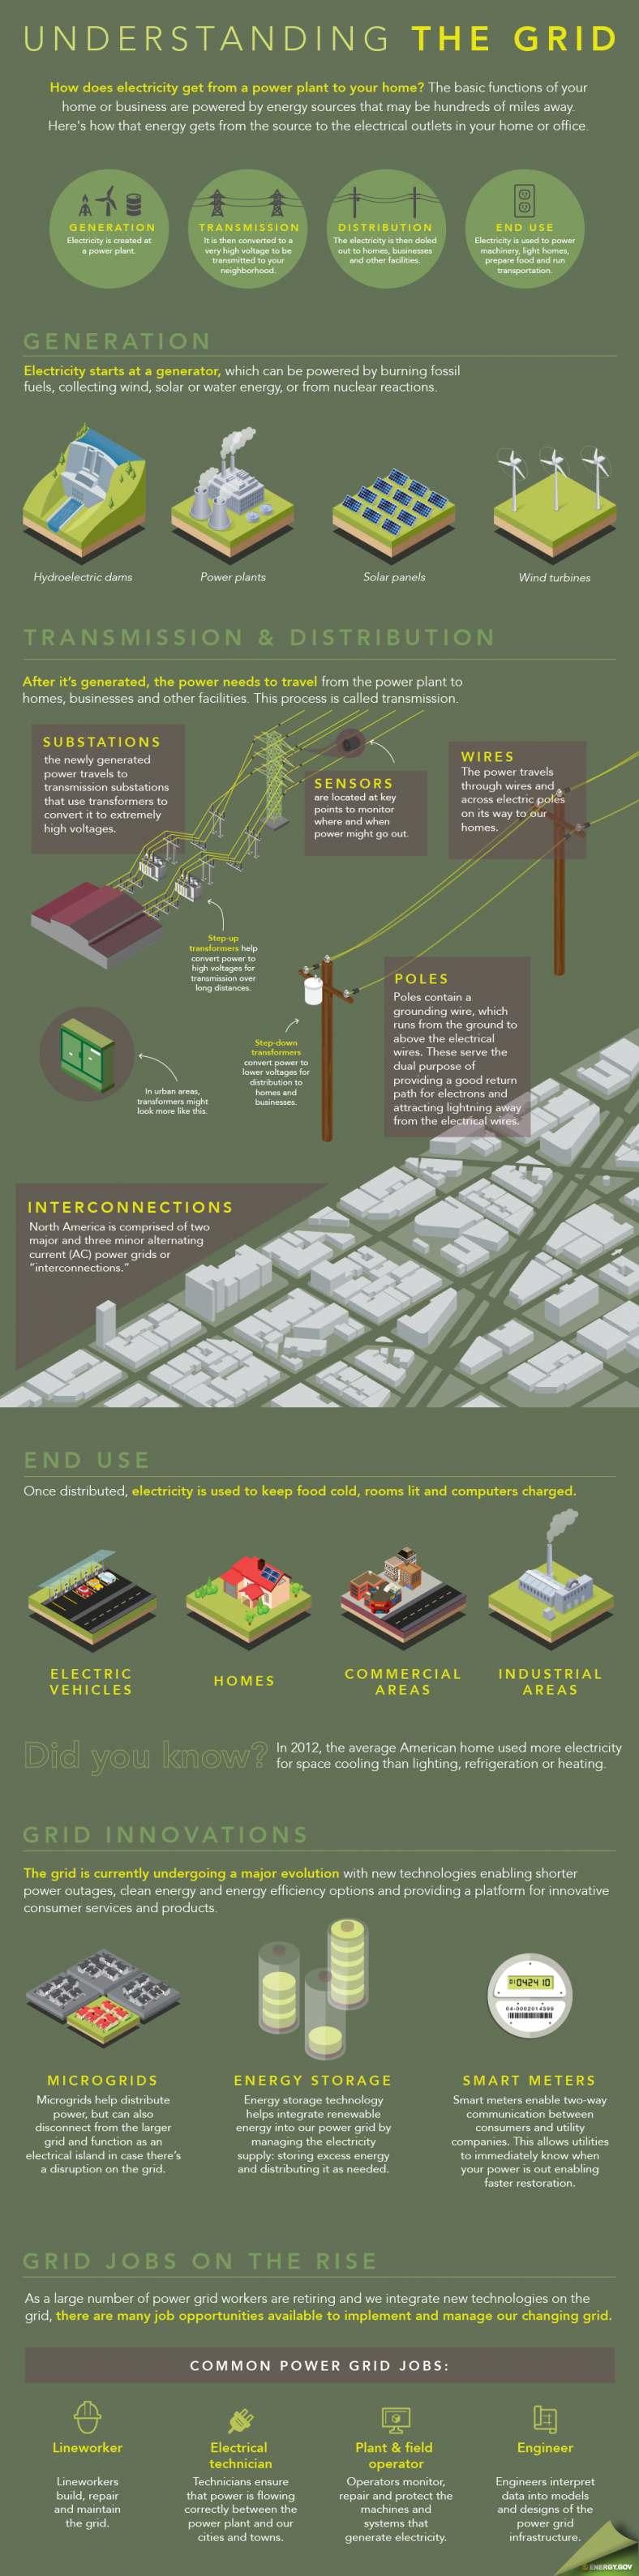 Alizul: INFOGRAPHIC: UNDERSTANDING THE GRID - HOW DOES ELECTRICITY ...